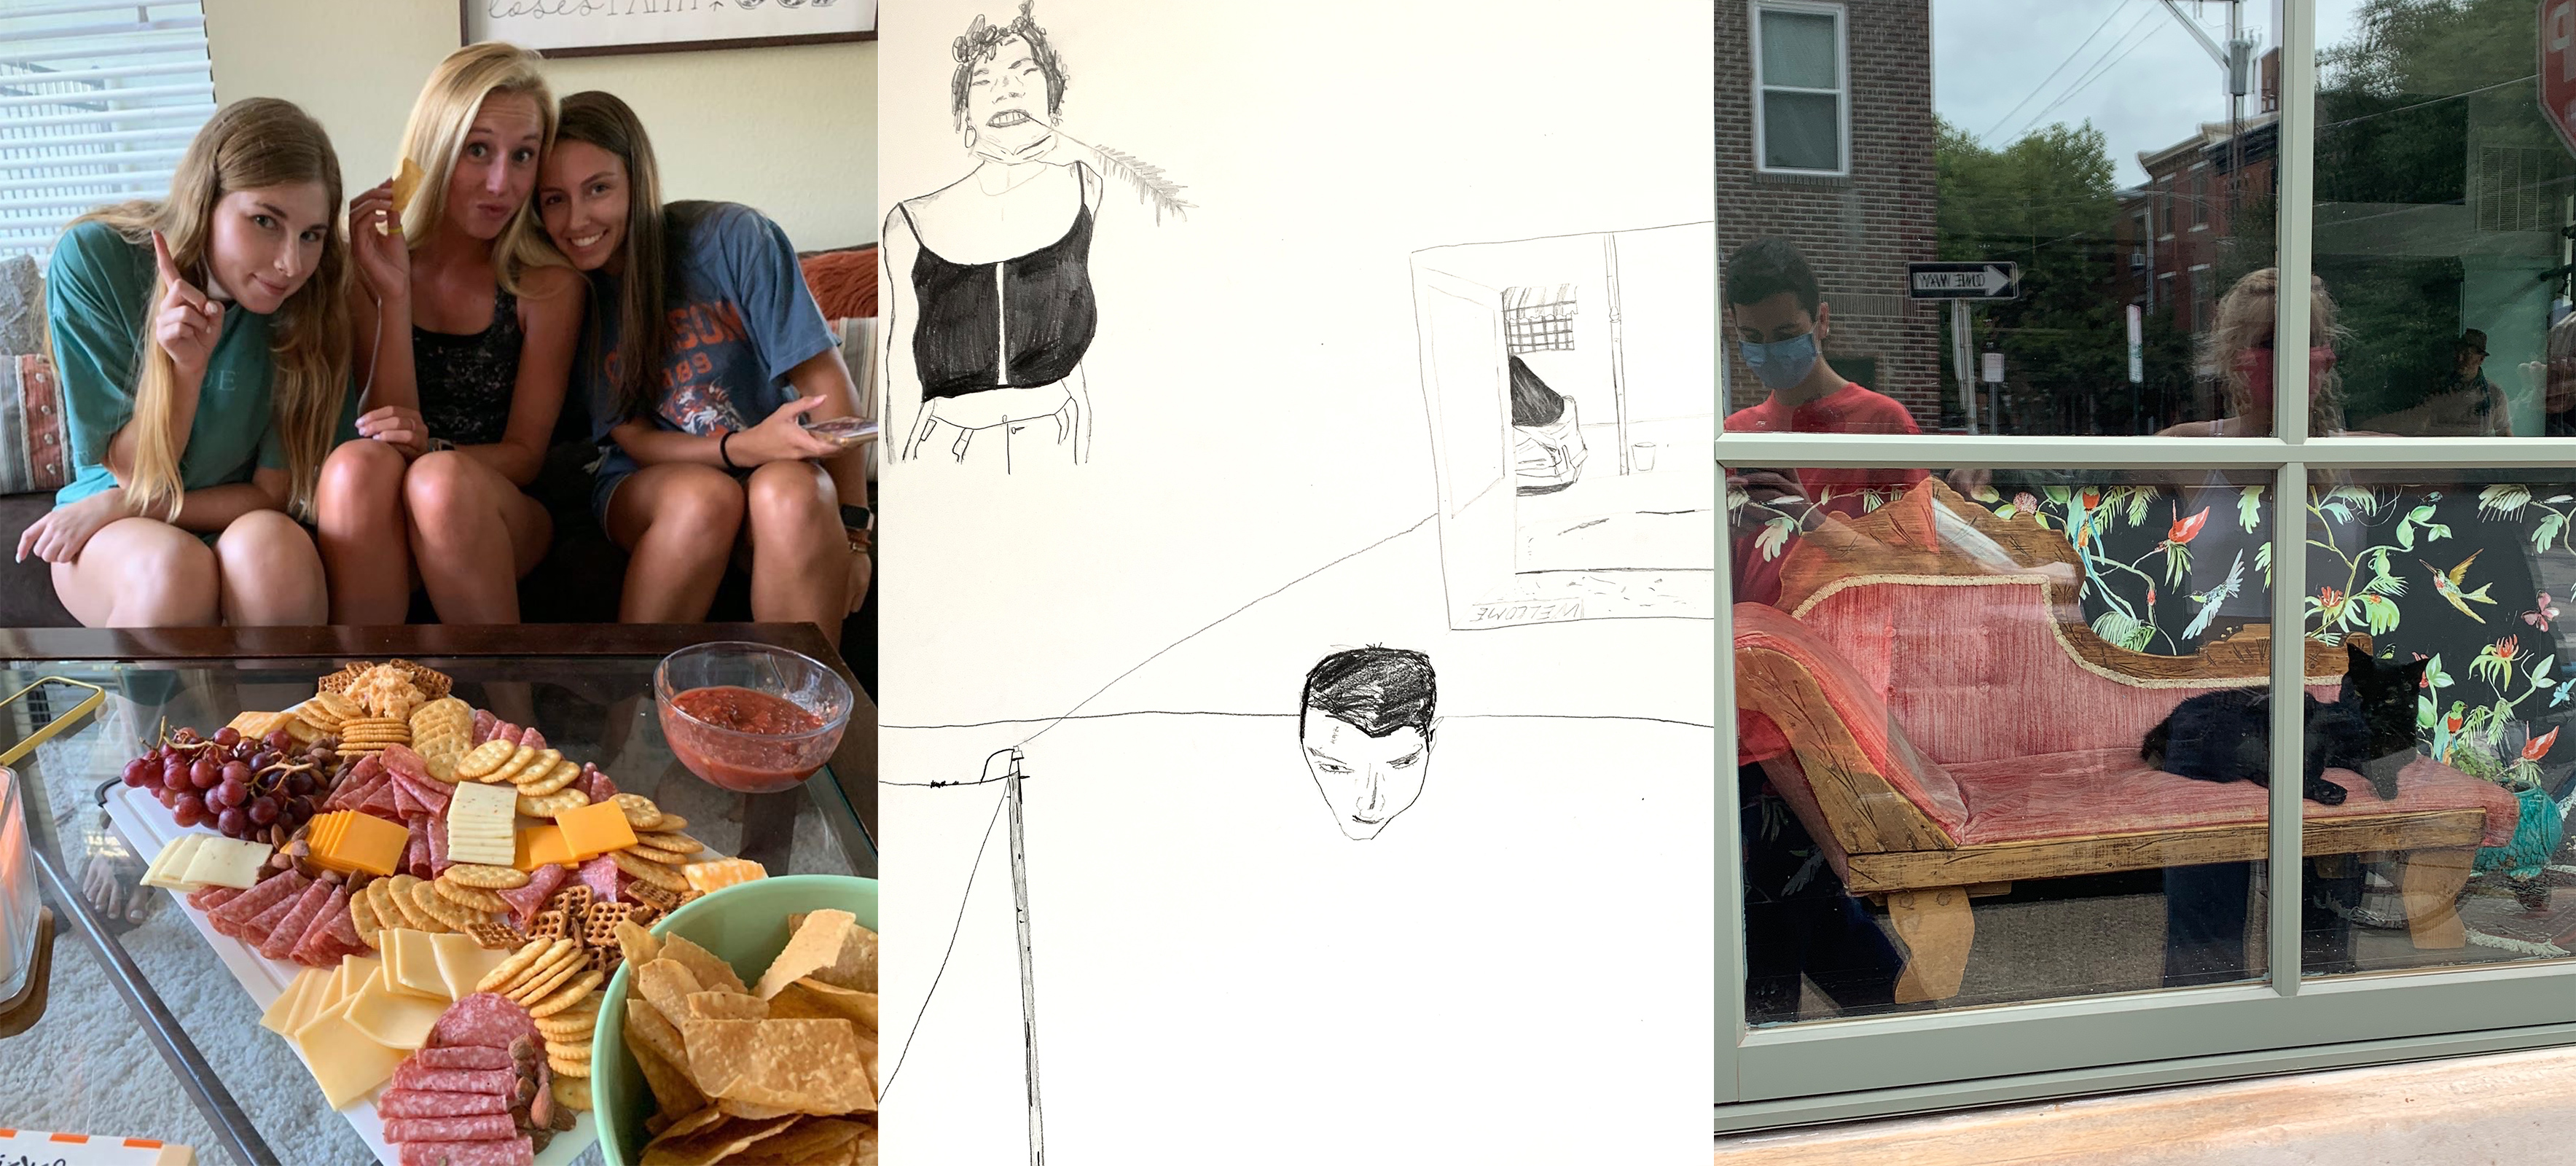 Clemson University sophomore Elizabeth Rew's roommates pose alongside a charcuterie board they made together; A drawing by Temple university student Kyle Caruthers of his living space, including his roommate, a self portrait, and the street he lives on; Caruthers and a friend, wearing masks, document a lounging cat